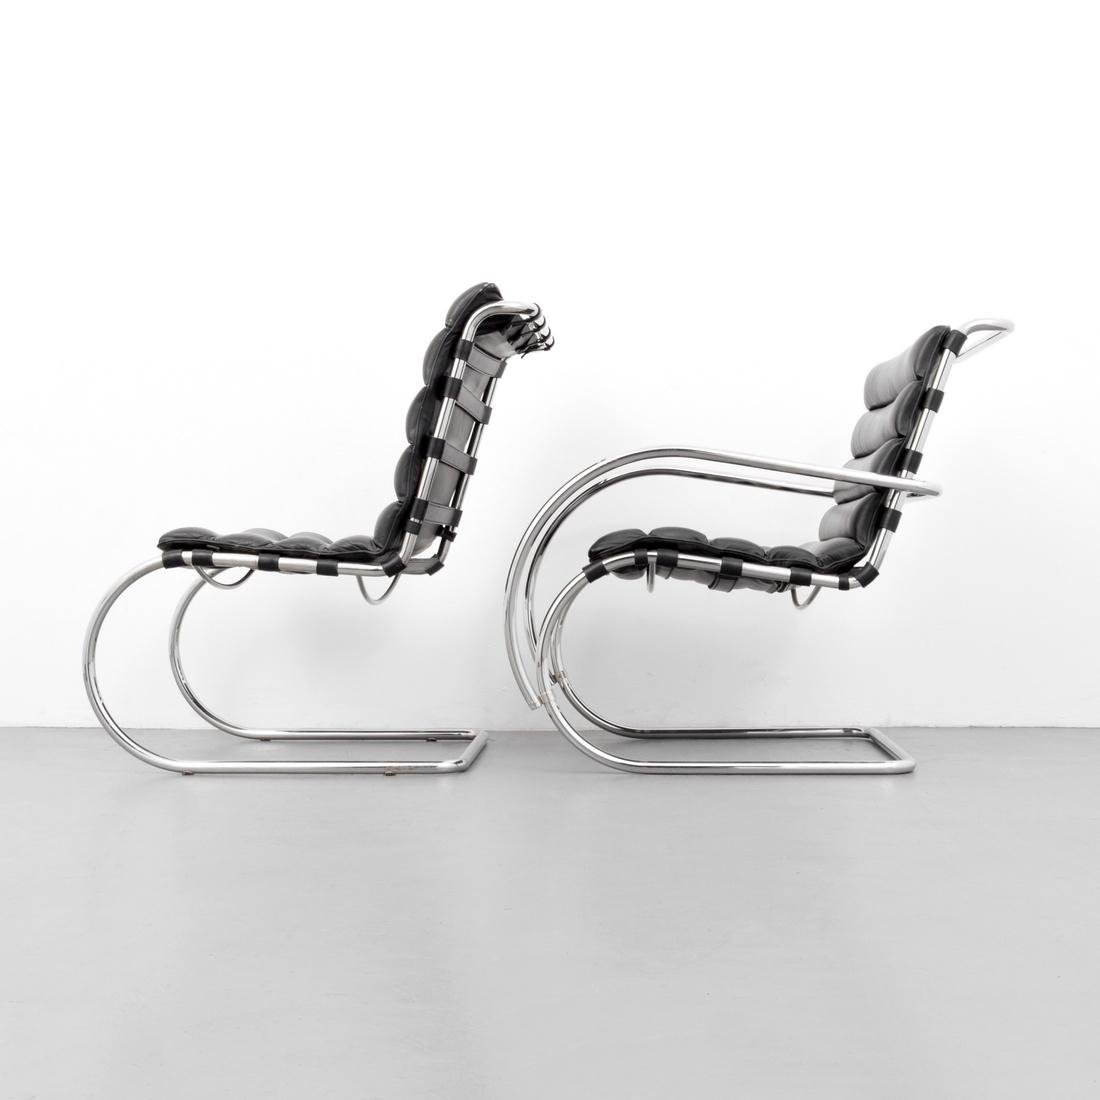 2 Mies Van Der Rohe Cantilever Chairs - 3